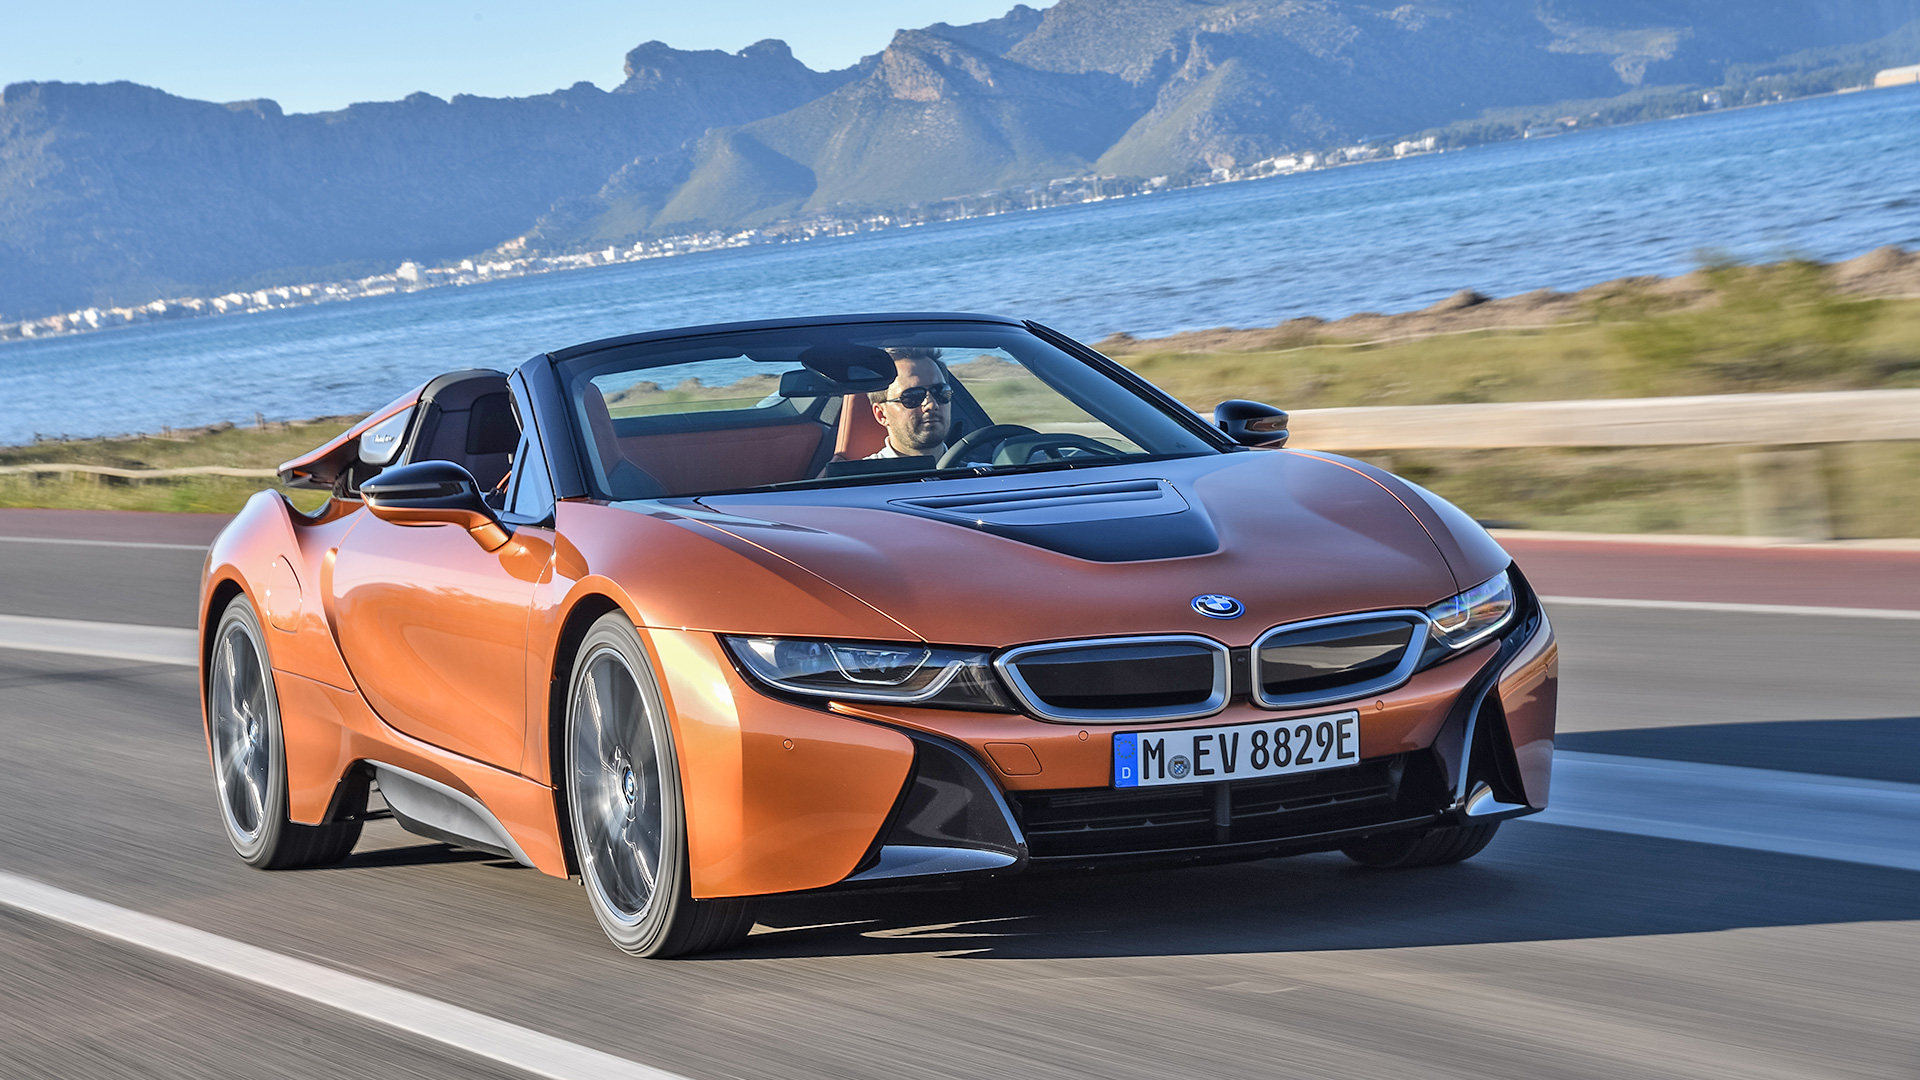 Bmw Exterior: BMW I8 2018 Roadster Exterior Car Photos